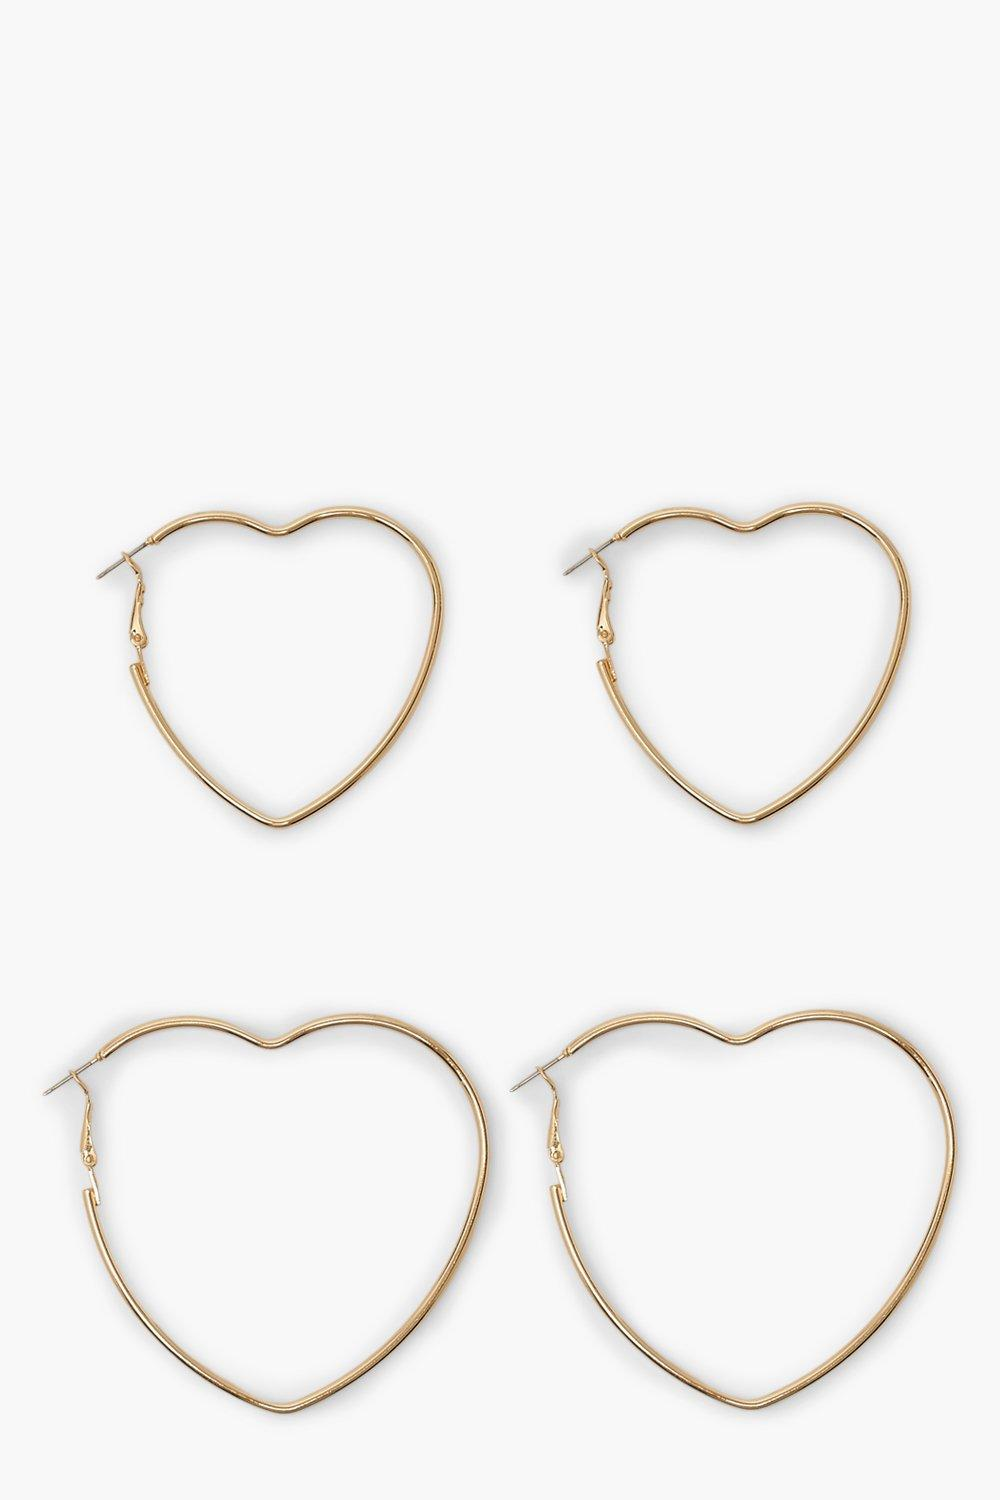 Boohoo 2 Pack Slim Heart Hoop Earrings